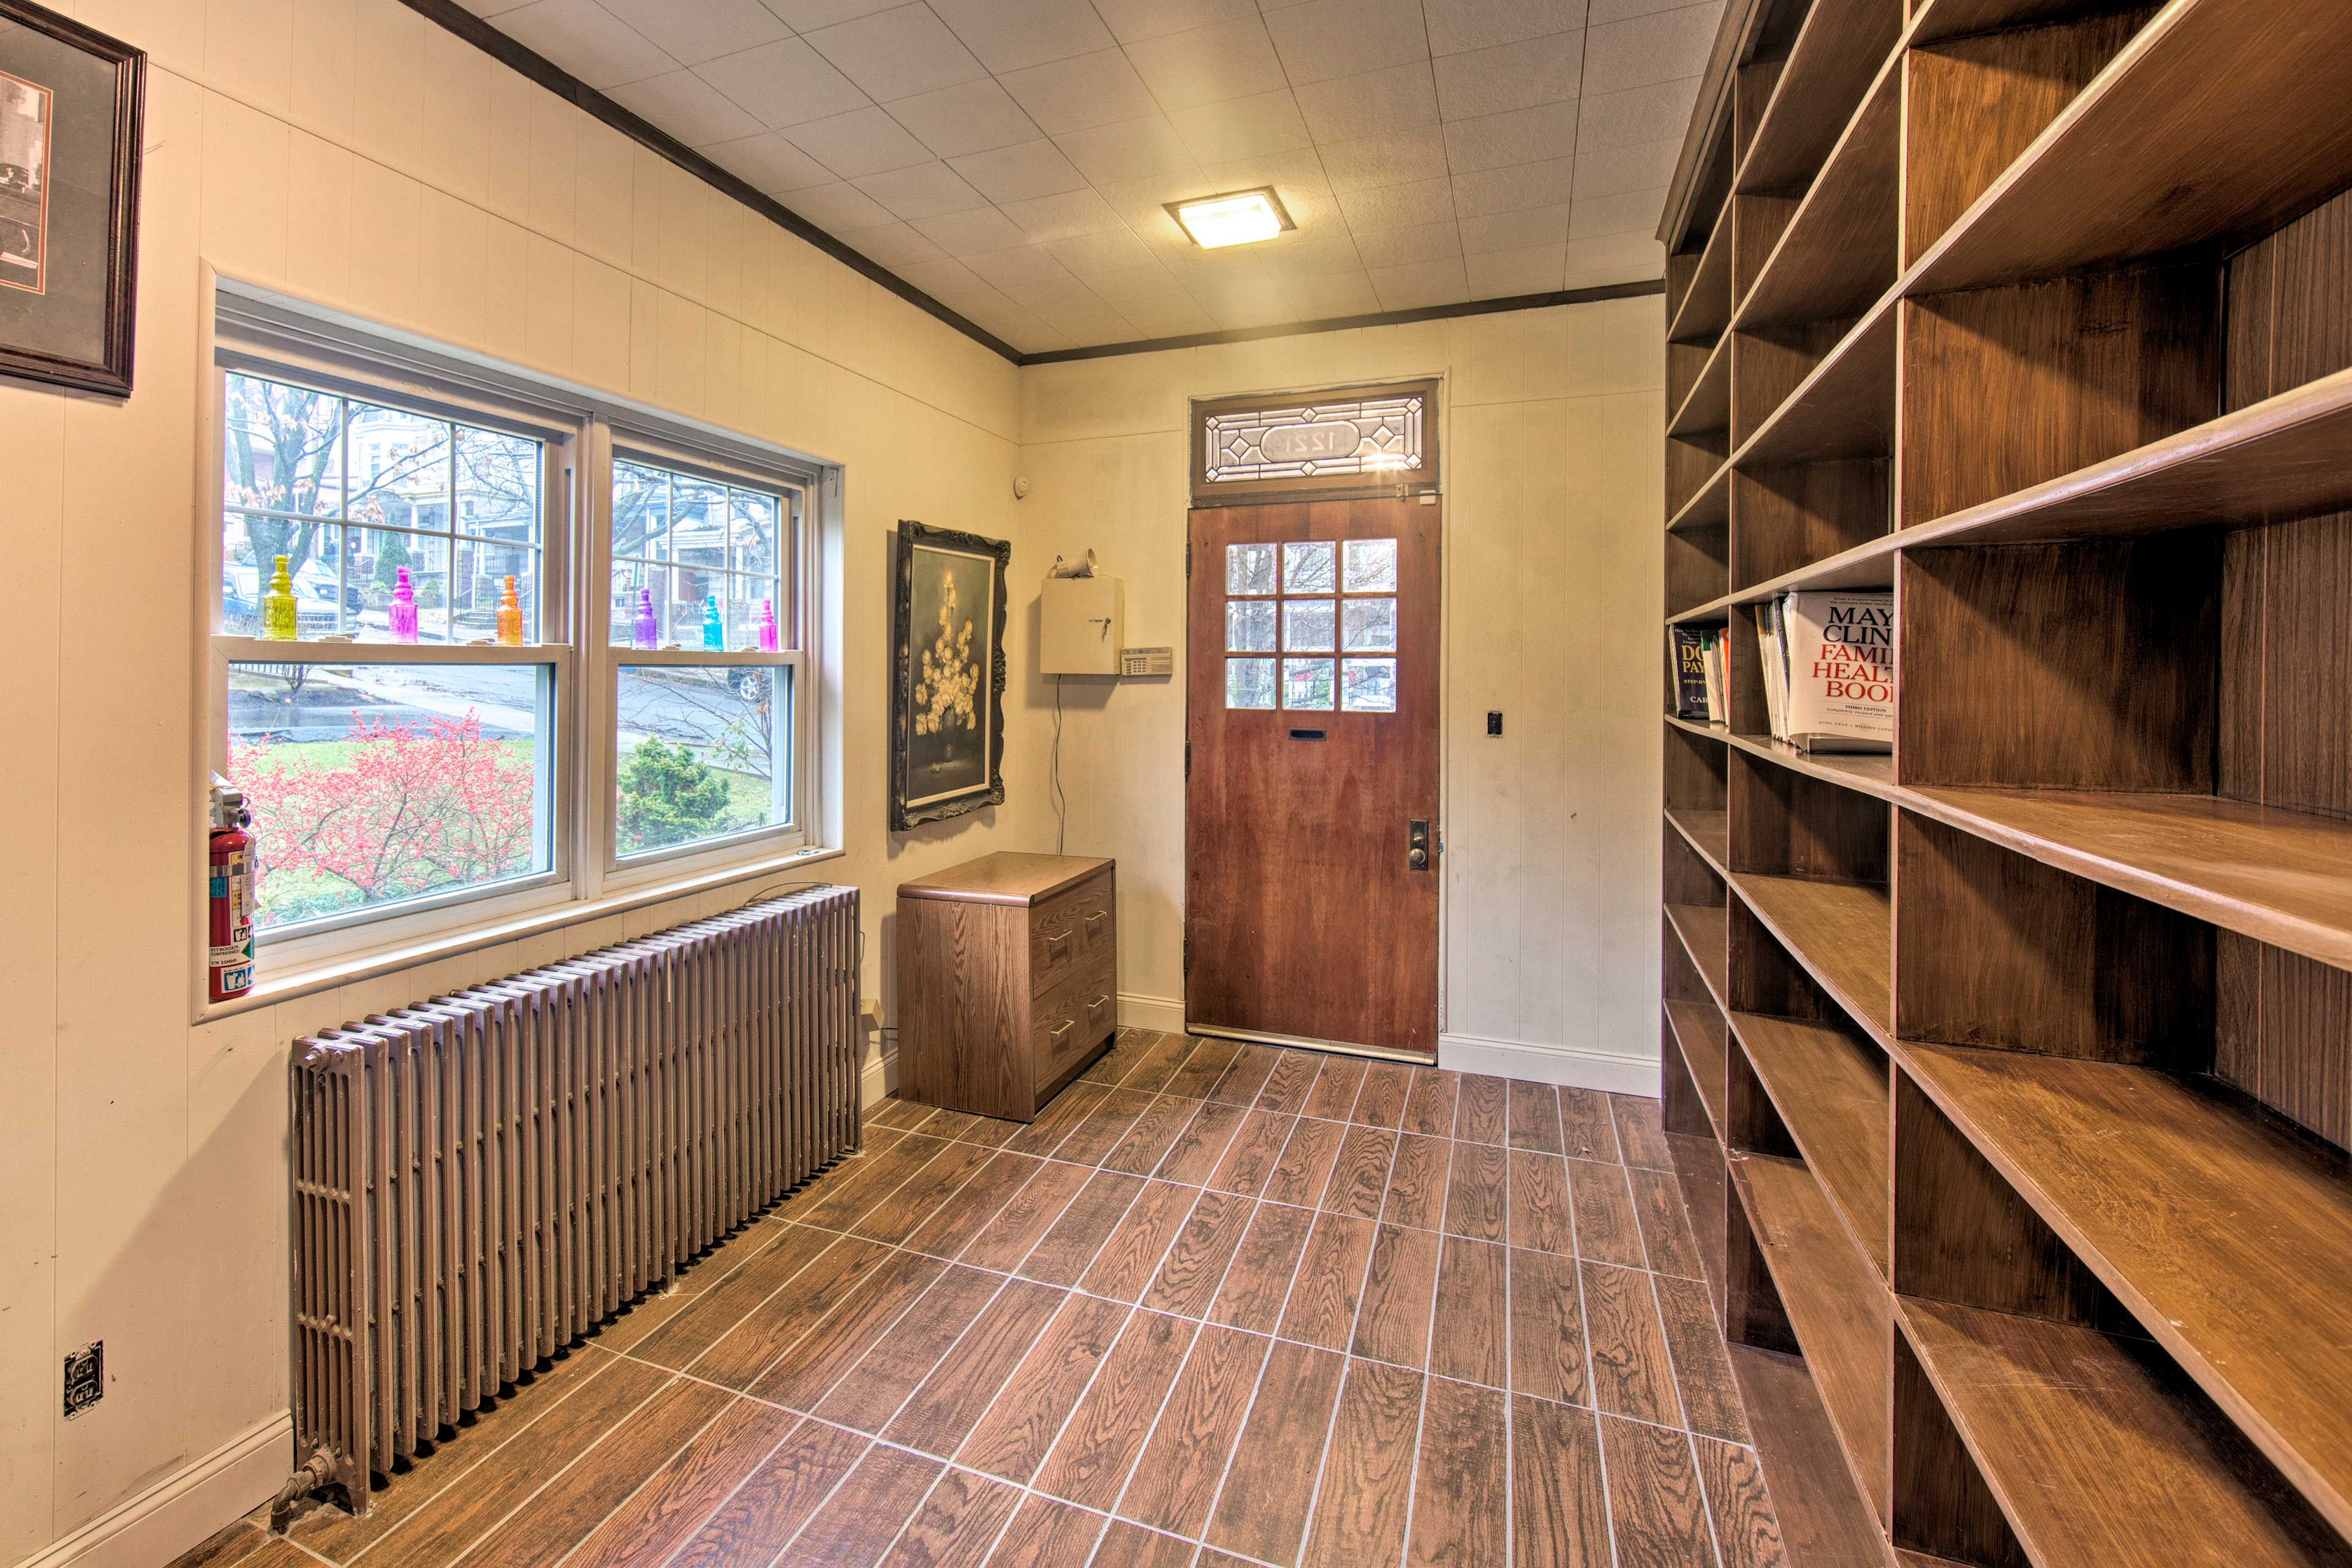 Peruse the books on the shelves in the mud room.